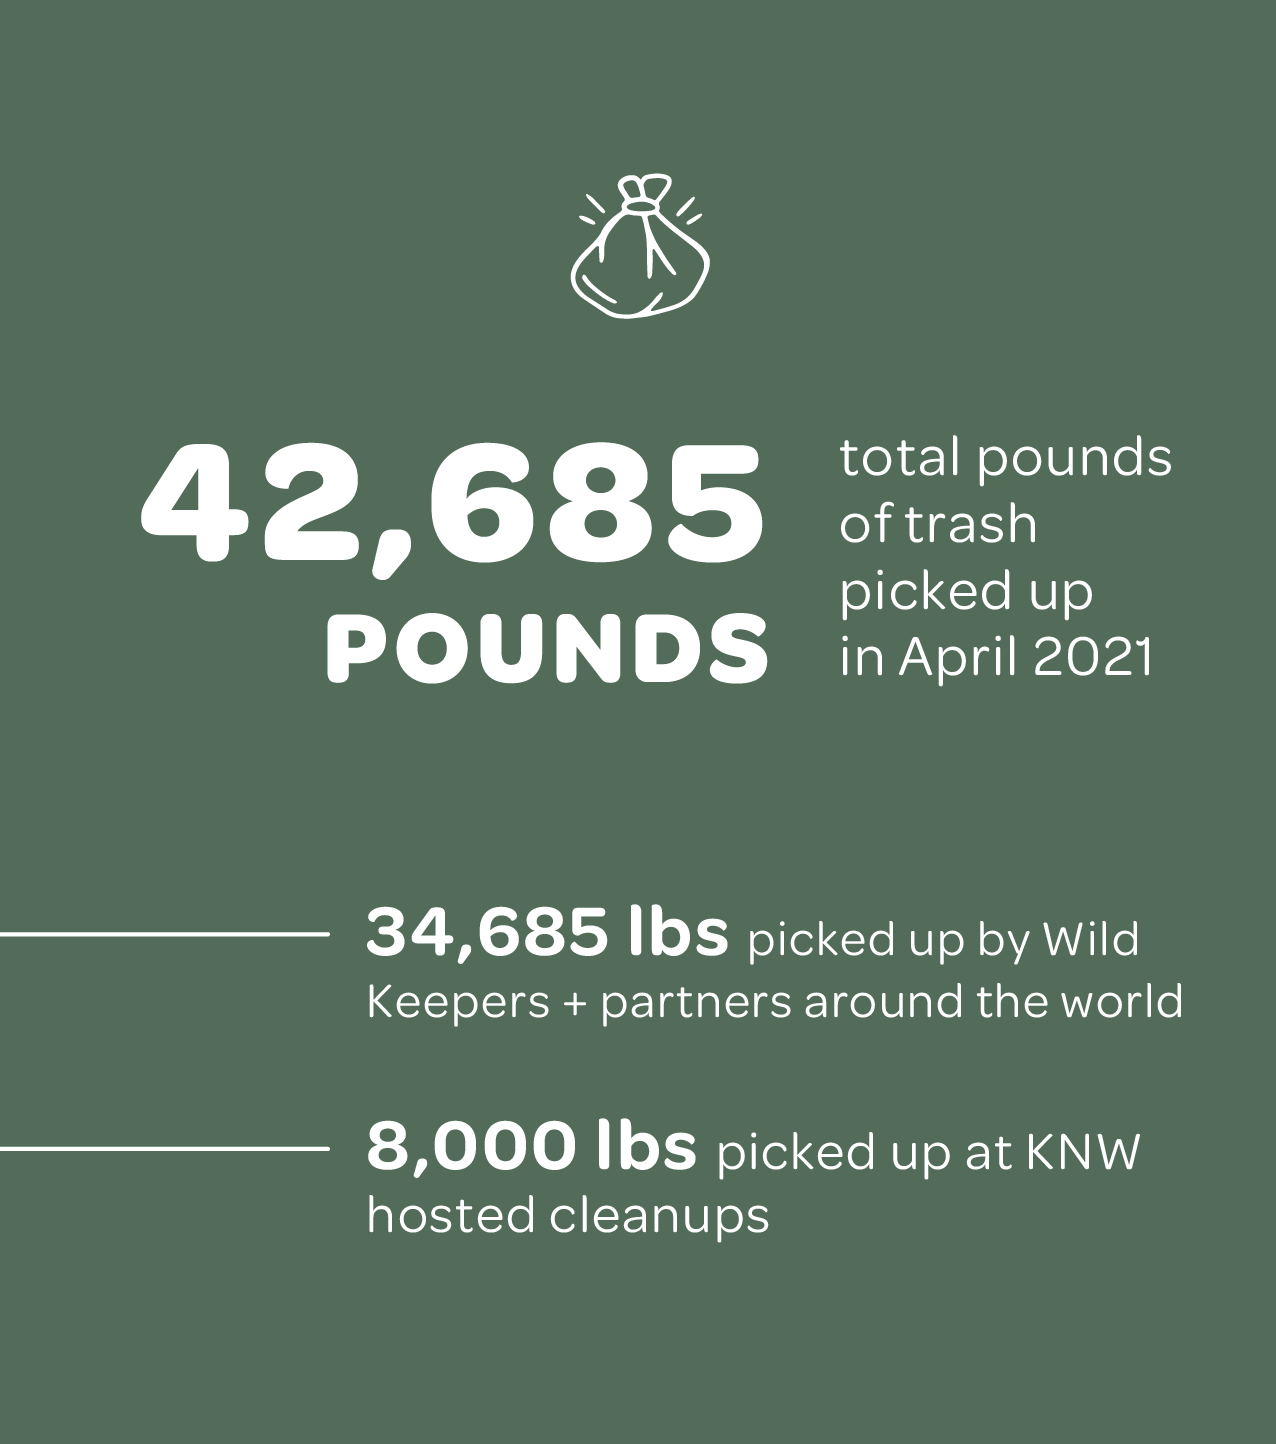 42,685 pounds of trash picked up in April 2021. 34,685 picked up by Wild Keeper + partners around the world. 8,000 pounds picked up at KNW hosted cleanups